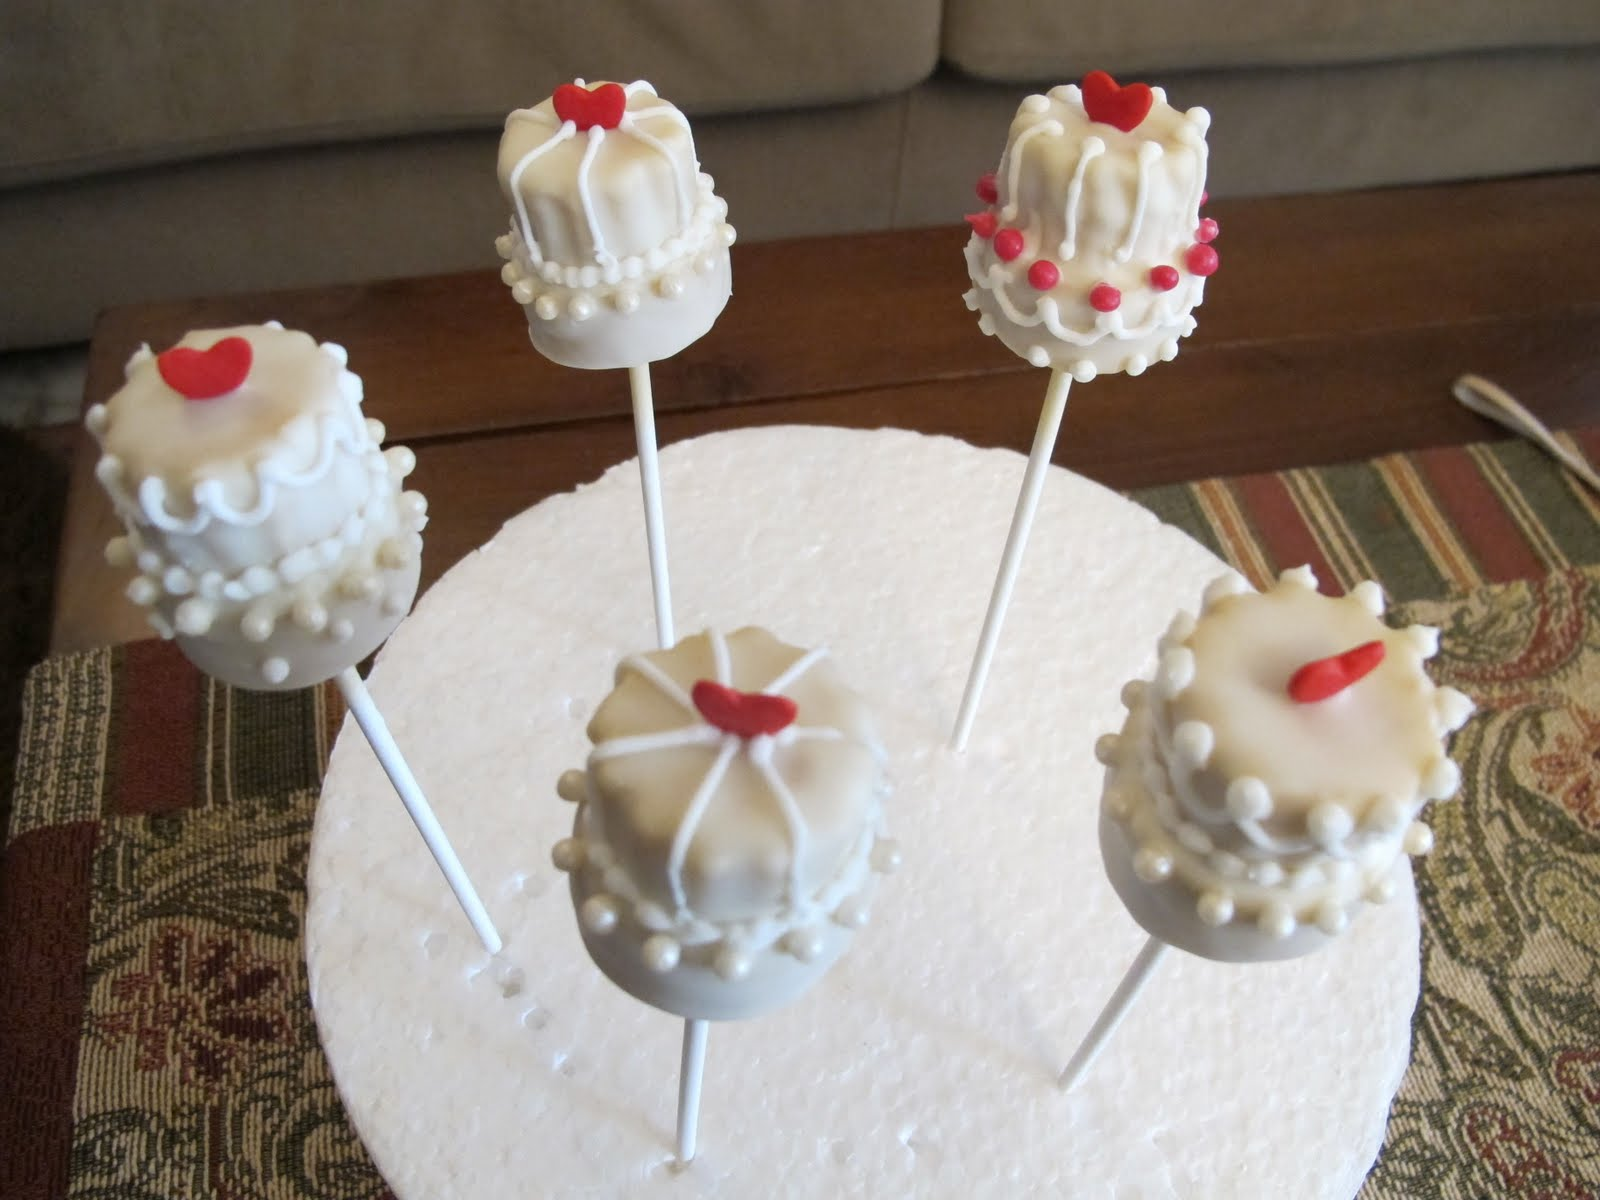 Pink Oven Cakes and Cookies Wedding cake pop